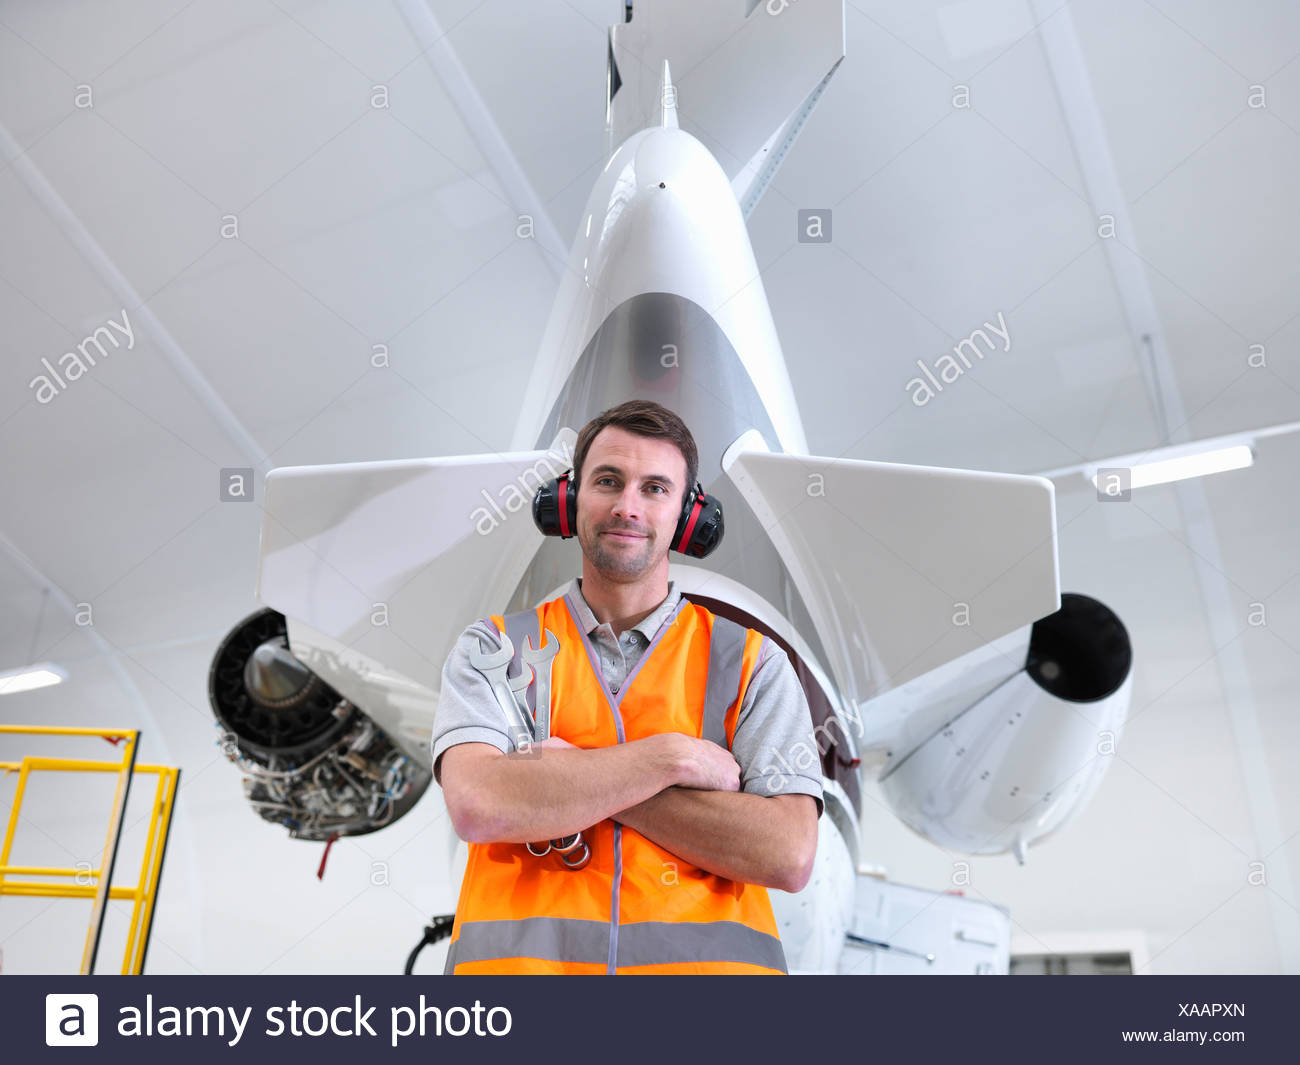 Engineer standing with jet aircraft - Stock Image